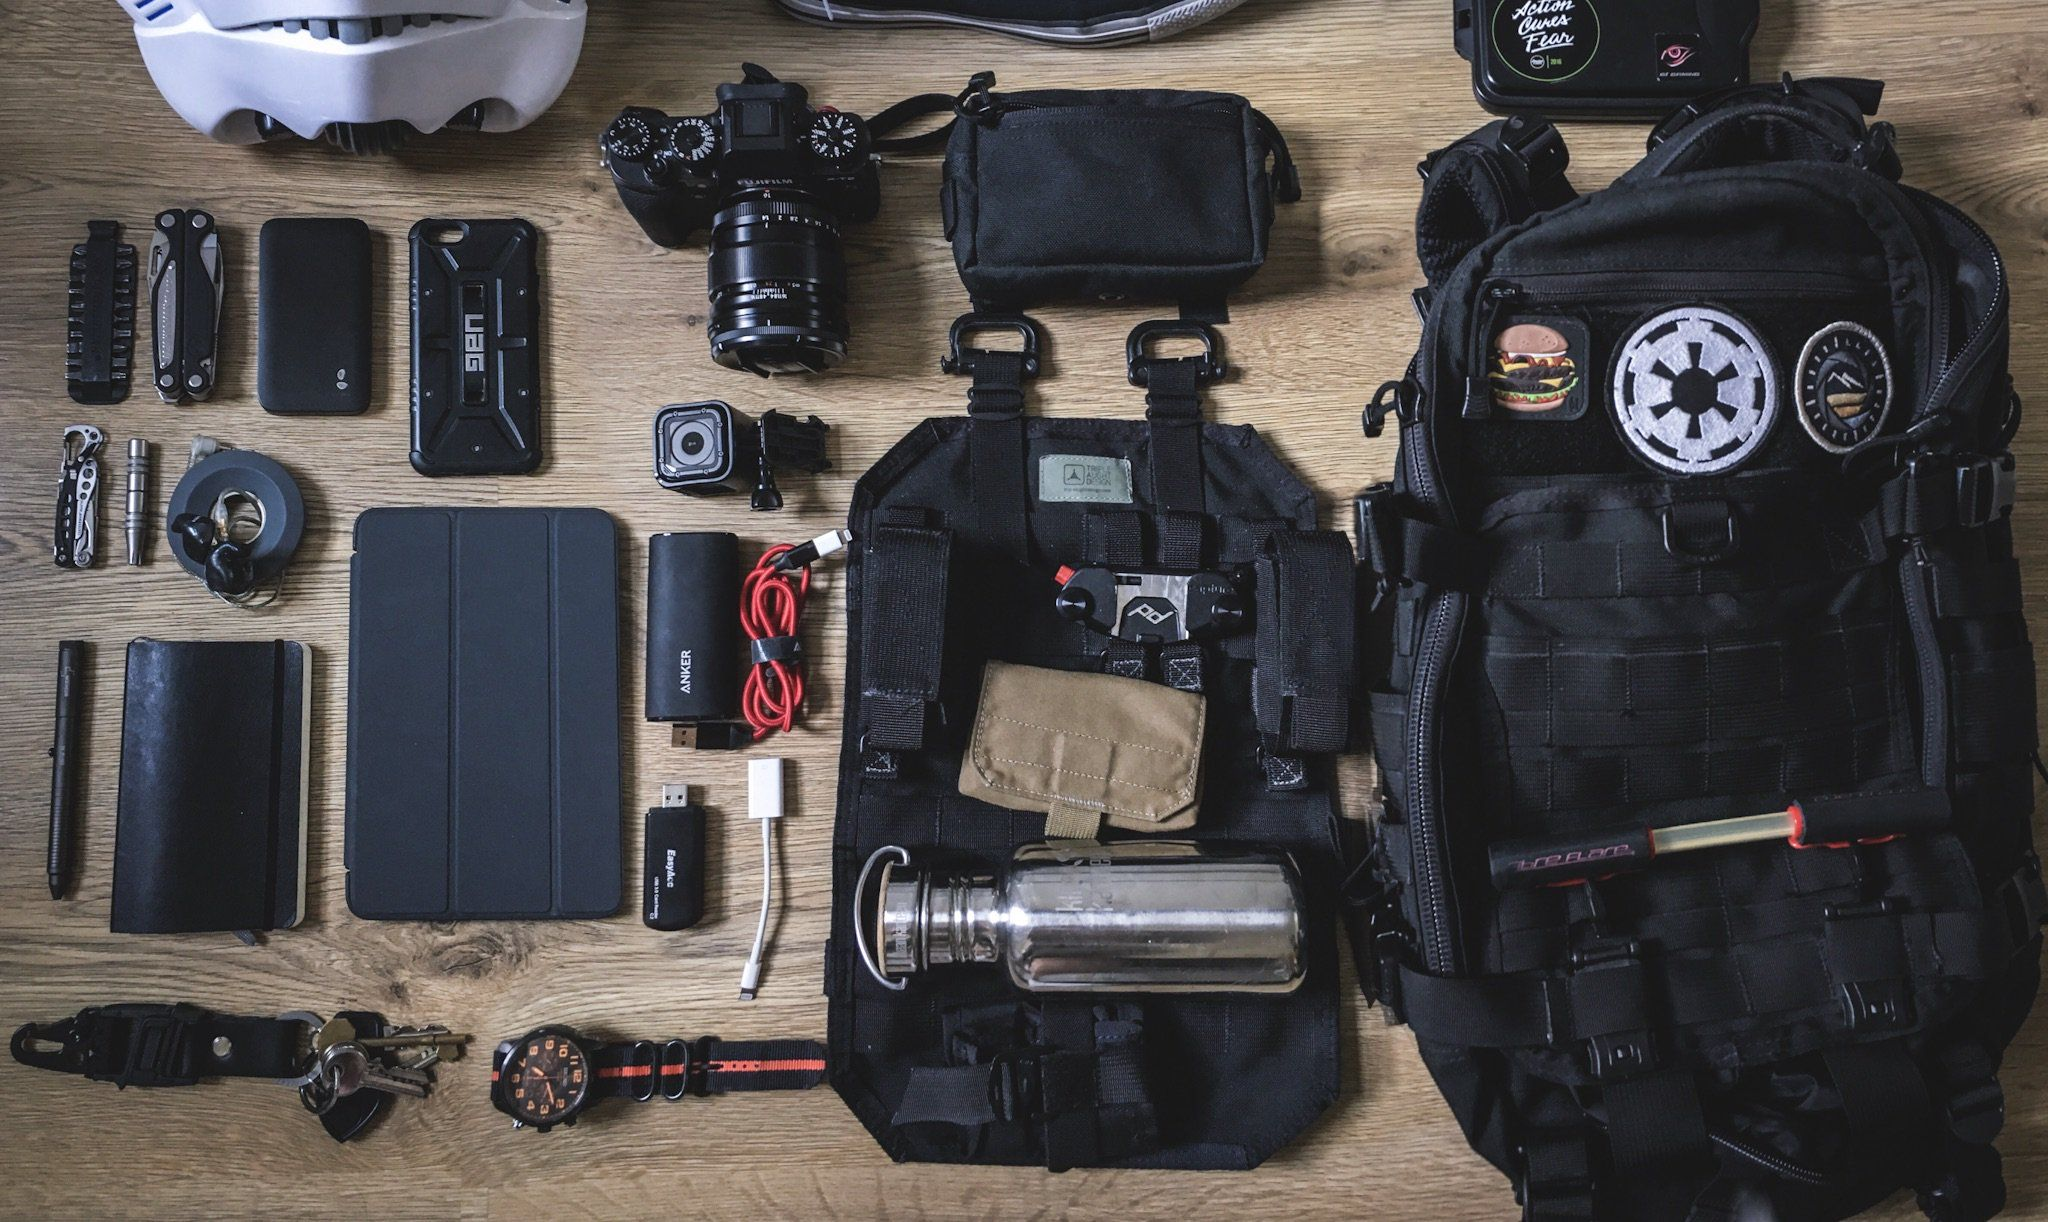 605c8d312c9 EDC v1.0 submitted by Dara Triple Aught Design Fastpack Litespeed II Klean  Kanteen Reflect